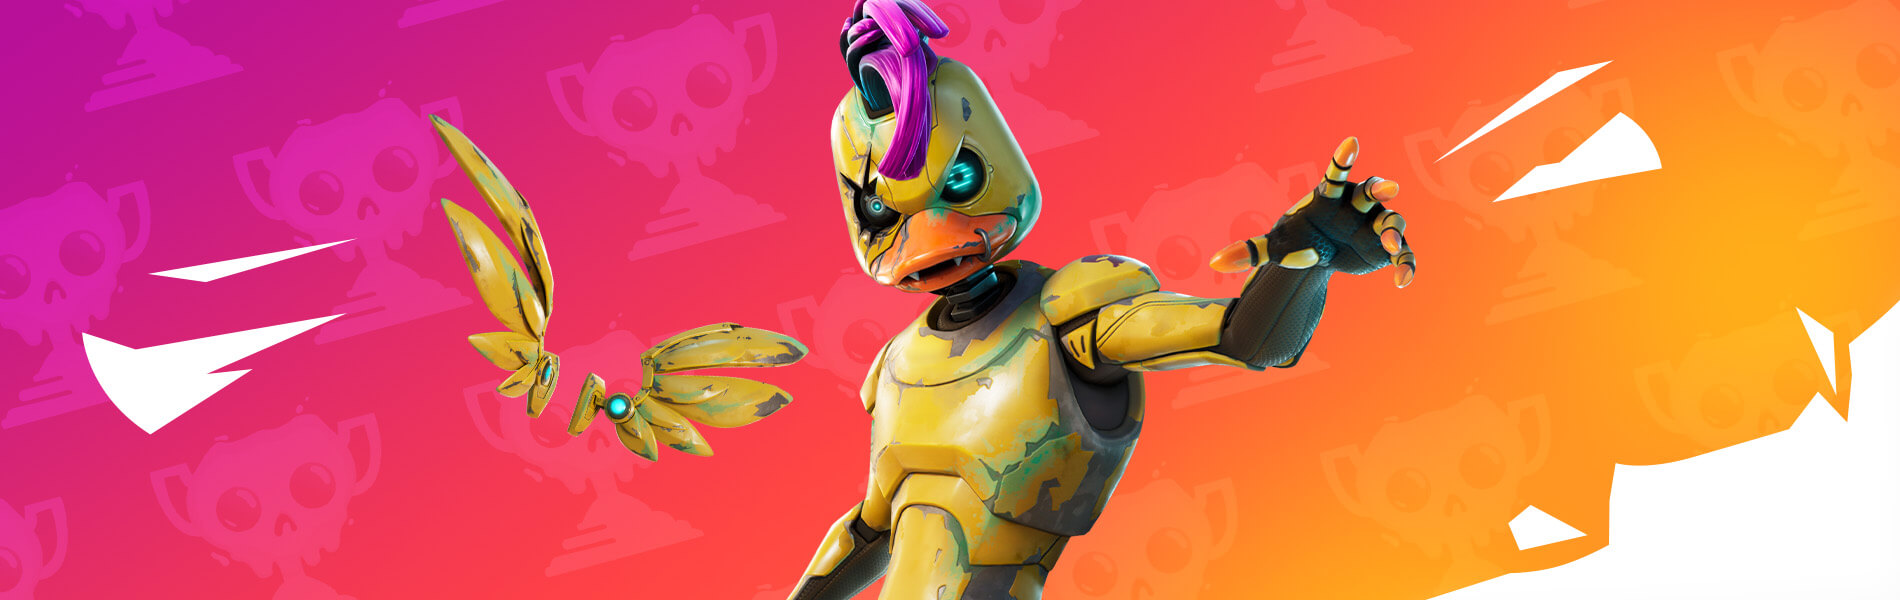 April 6th Fortnite Events Fortnite Spring Breakout Cup Official Rules